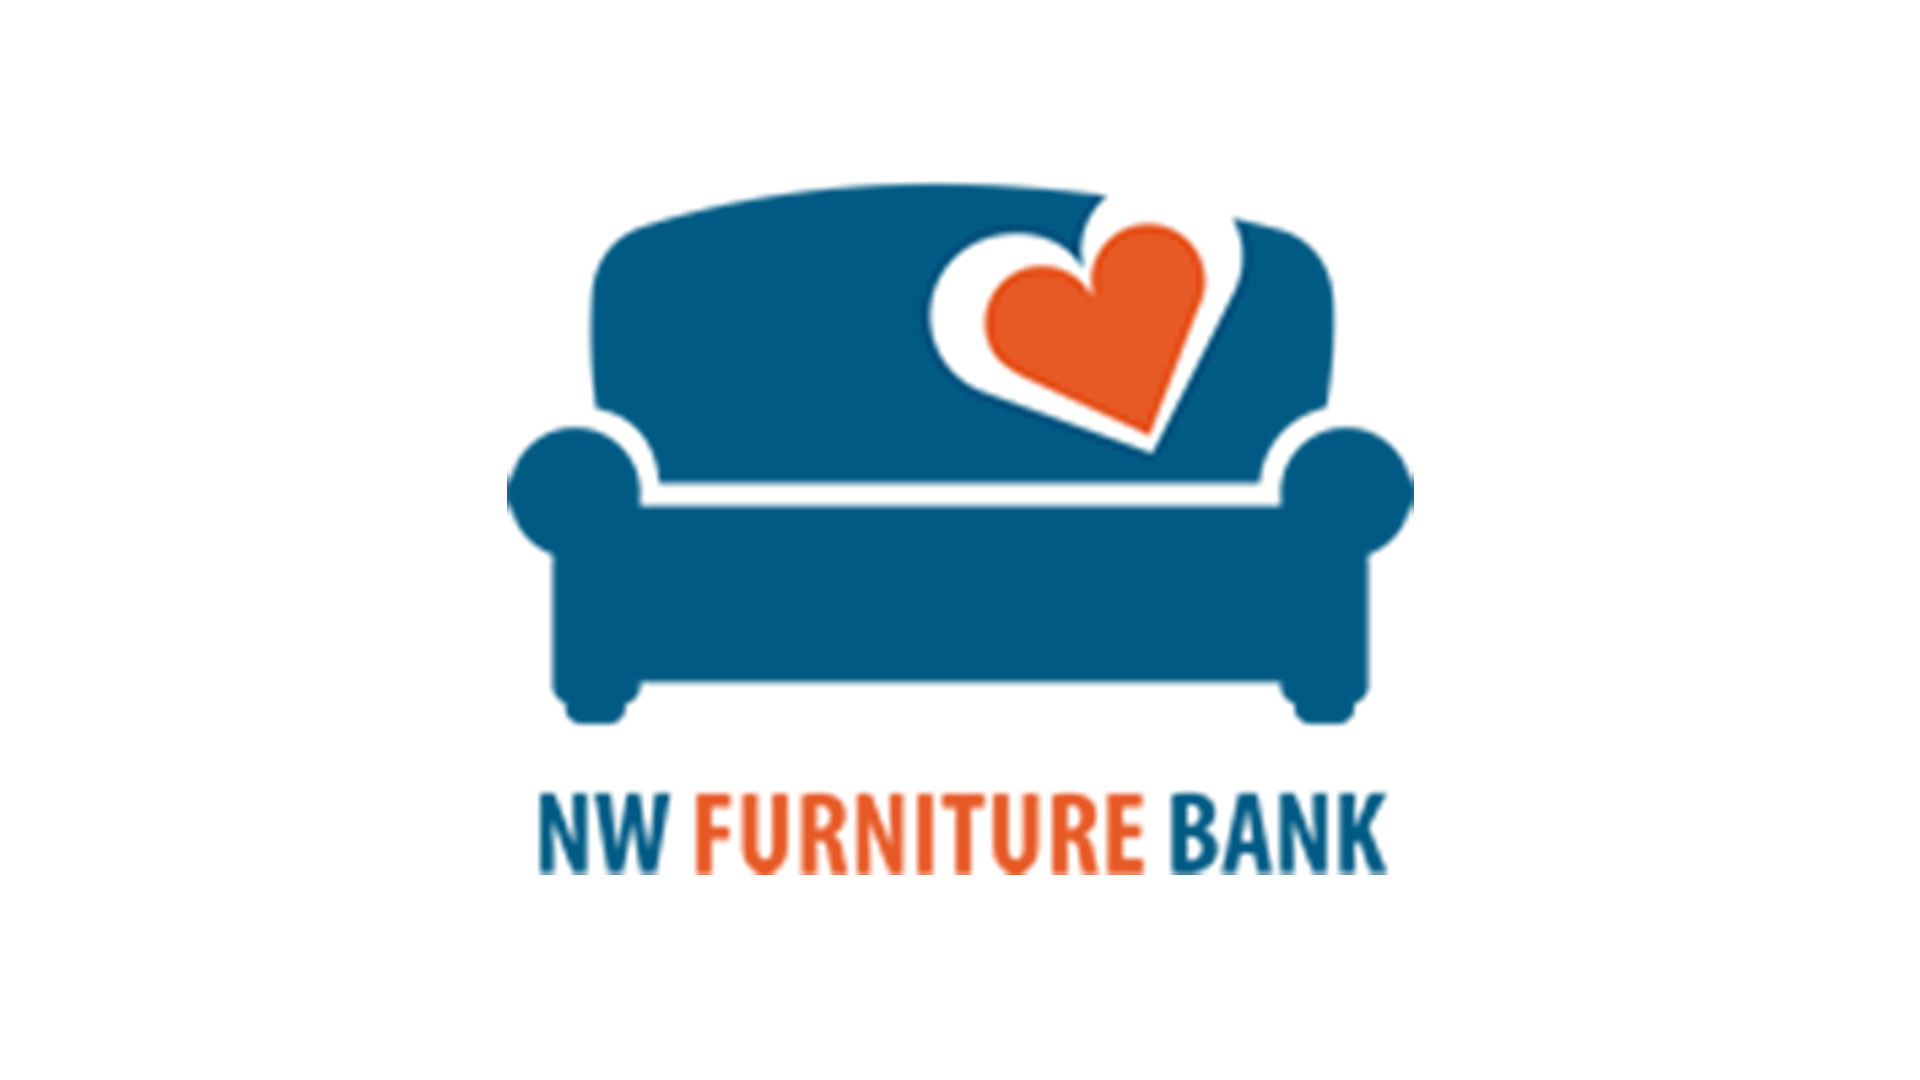 We partner with the NW Furniture Bank. Read on to learn more.